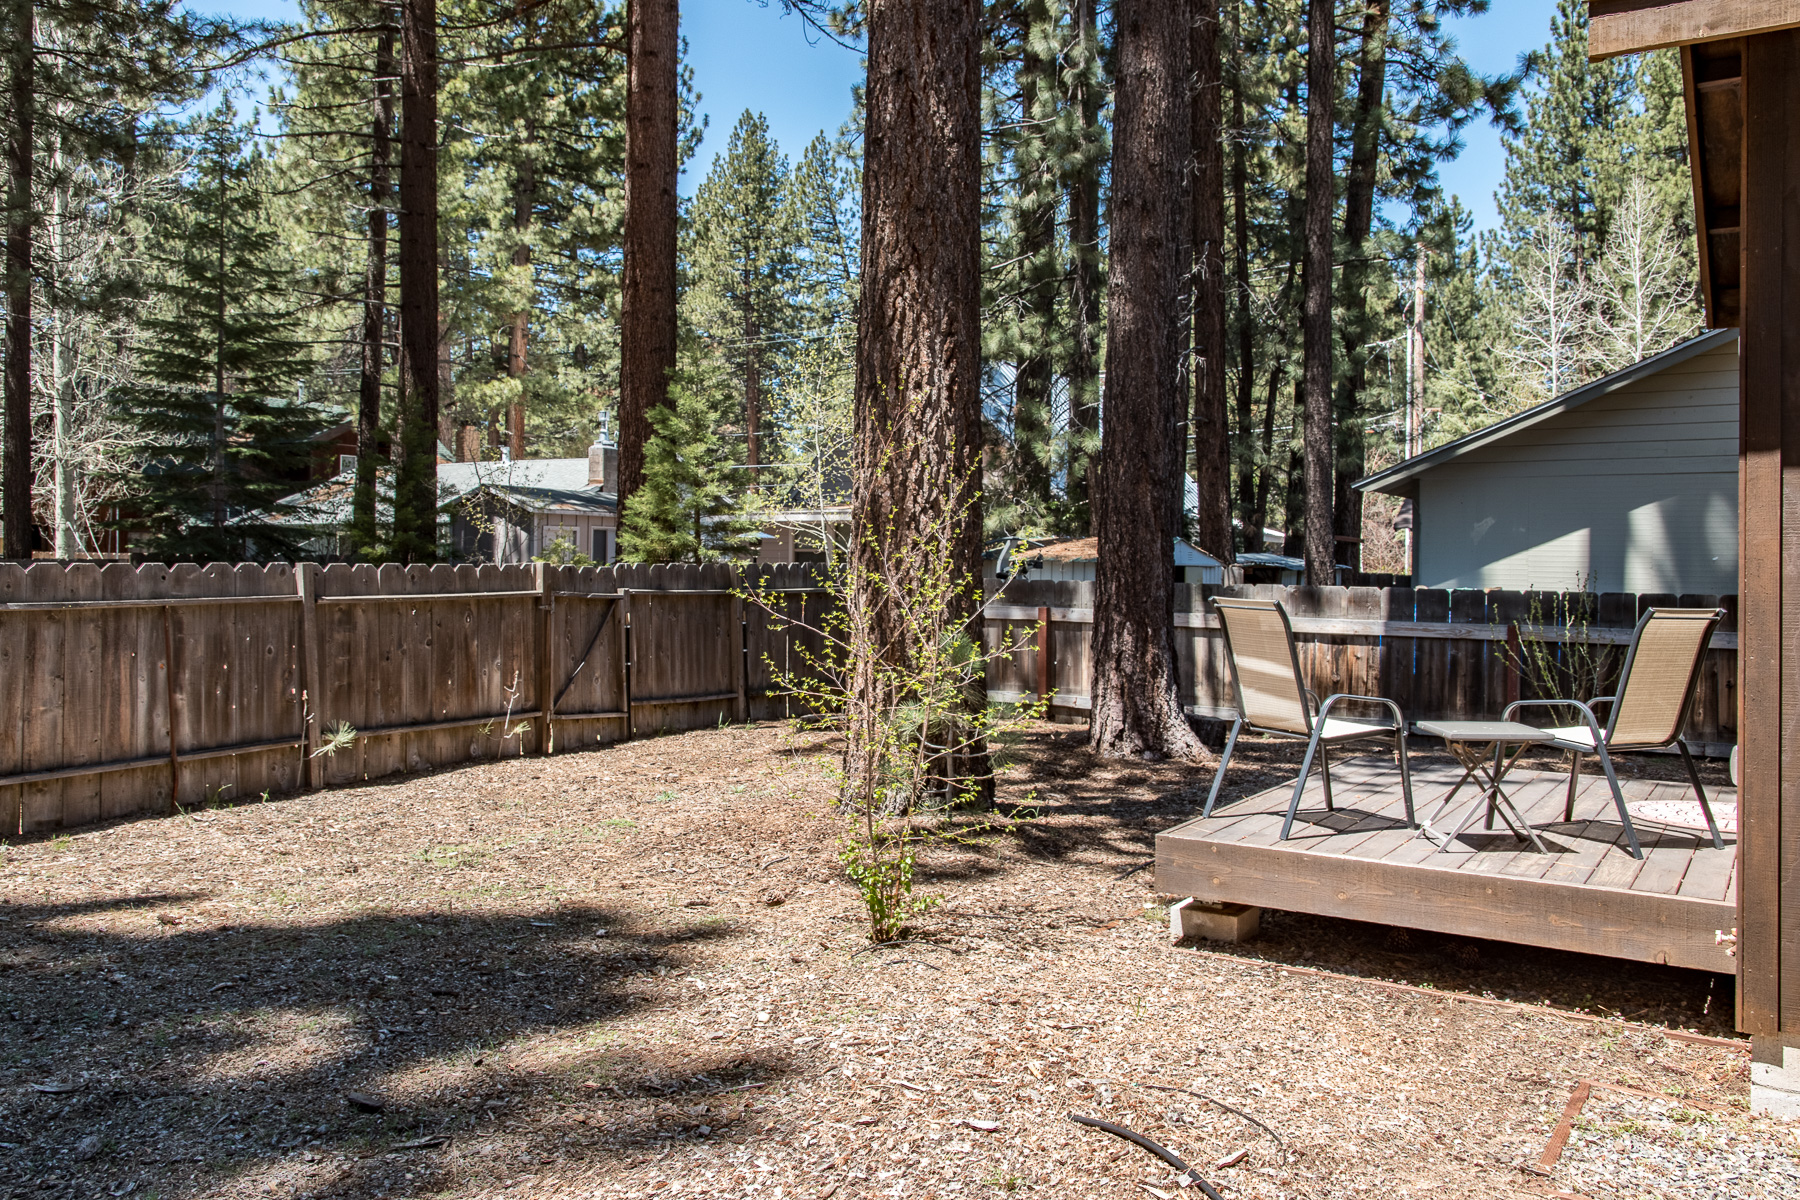 reach pure one heaven having cabins south usta resorts cabin lake within in puts you of are the mulcollaktah tahoe views